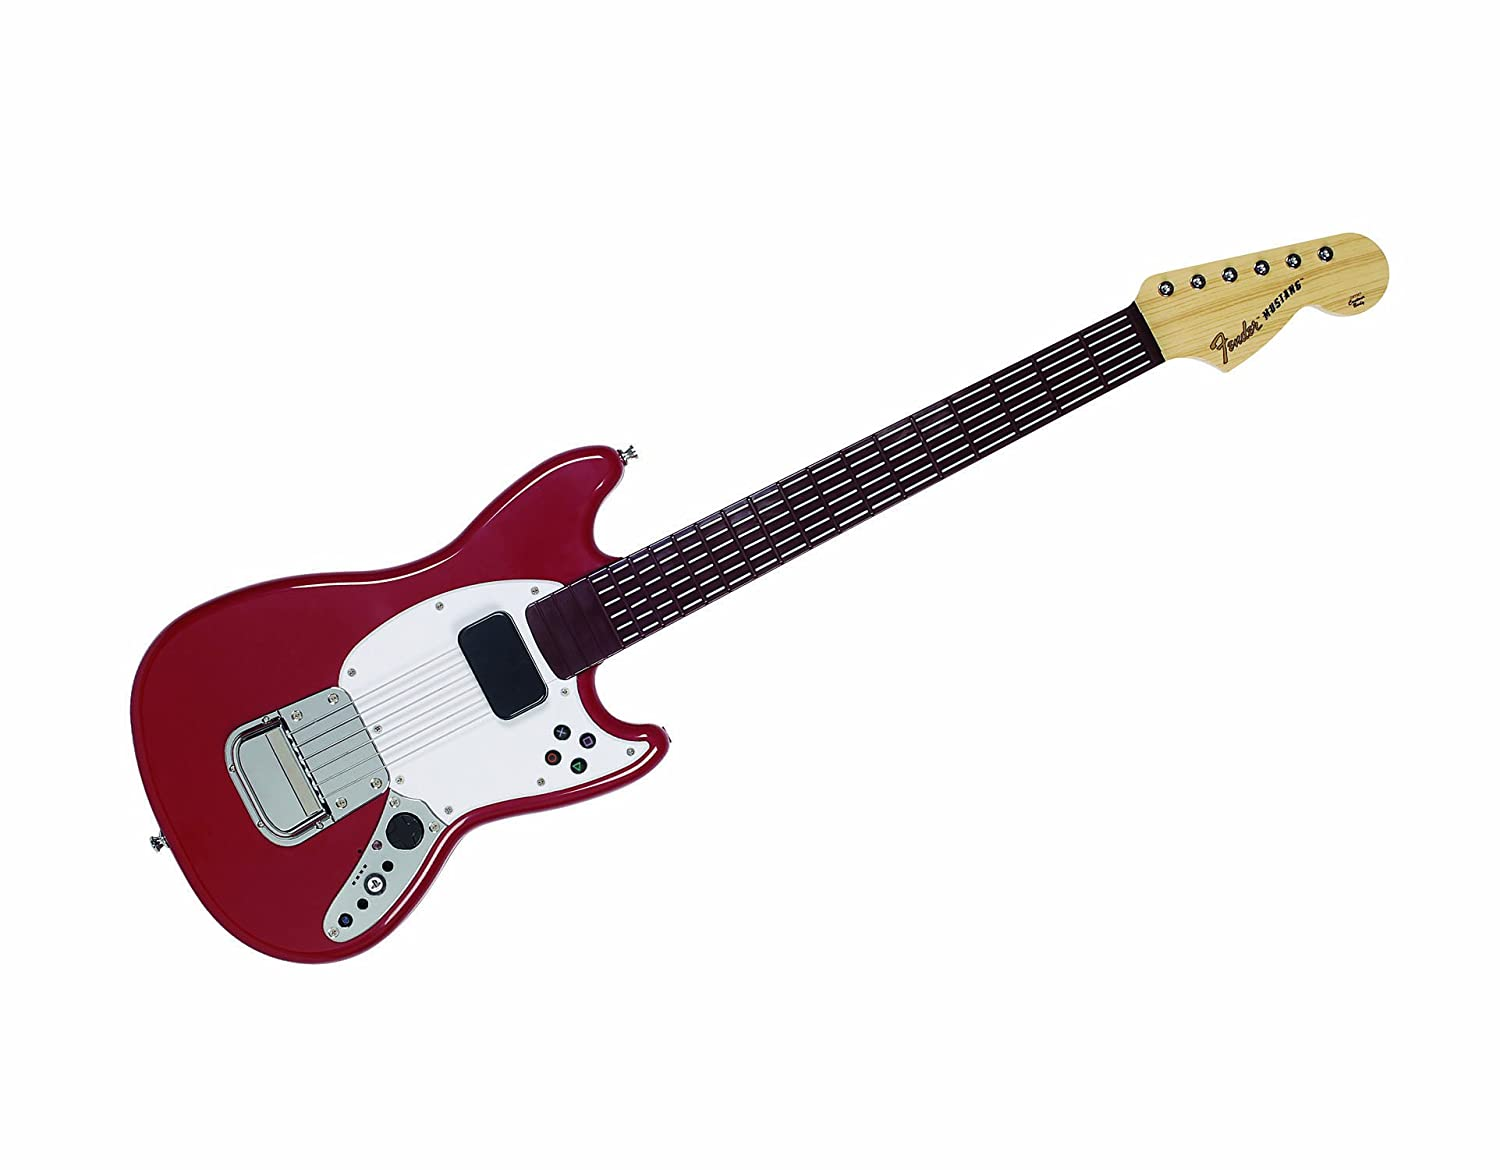 hight resolution of name rock band 3 wireless fender mustang pro guitar platform wii xbox 360 ps3 released with rock band 3 xbox ps3 wii connection wireless usb